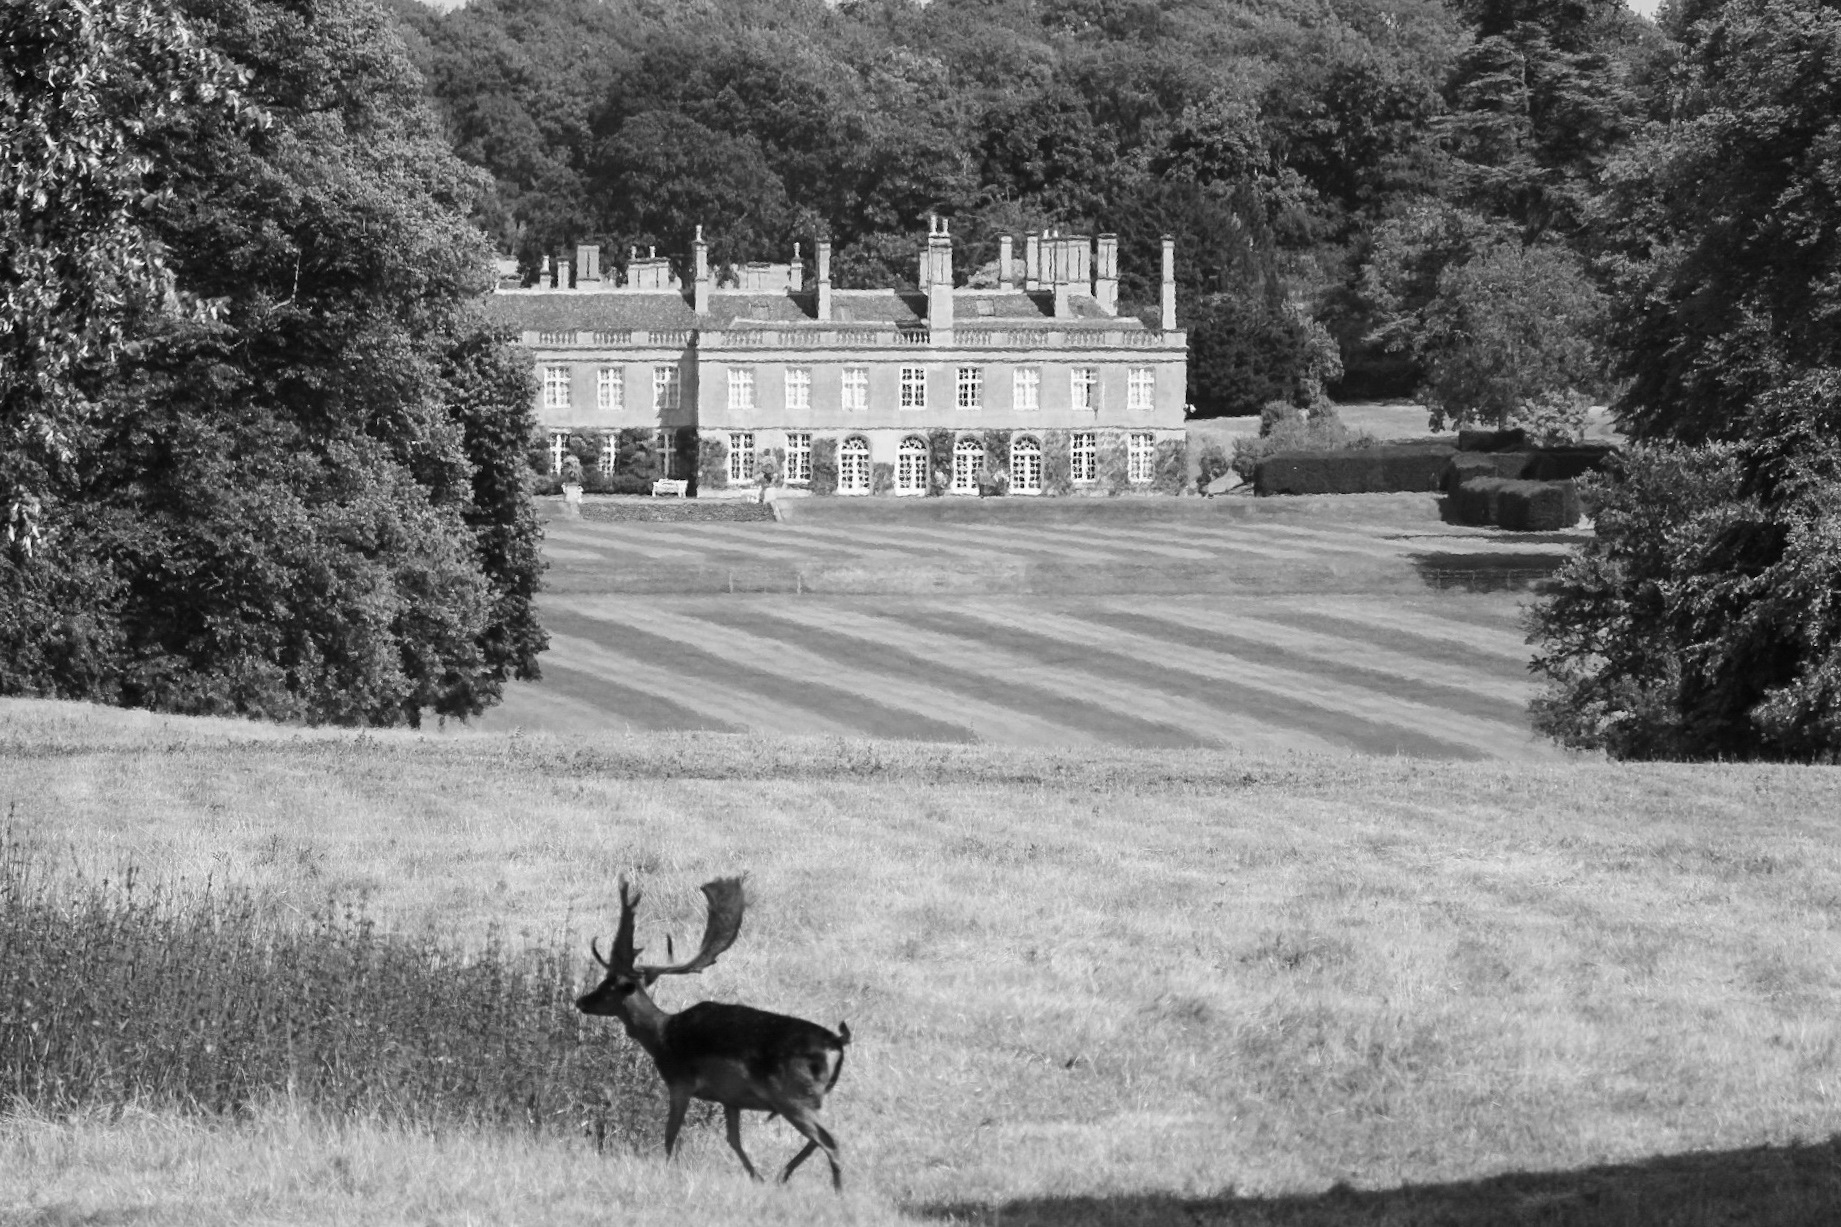 boughton house by Dan whitney